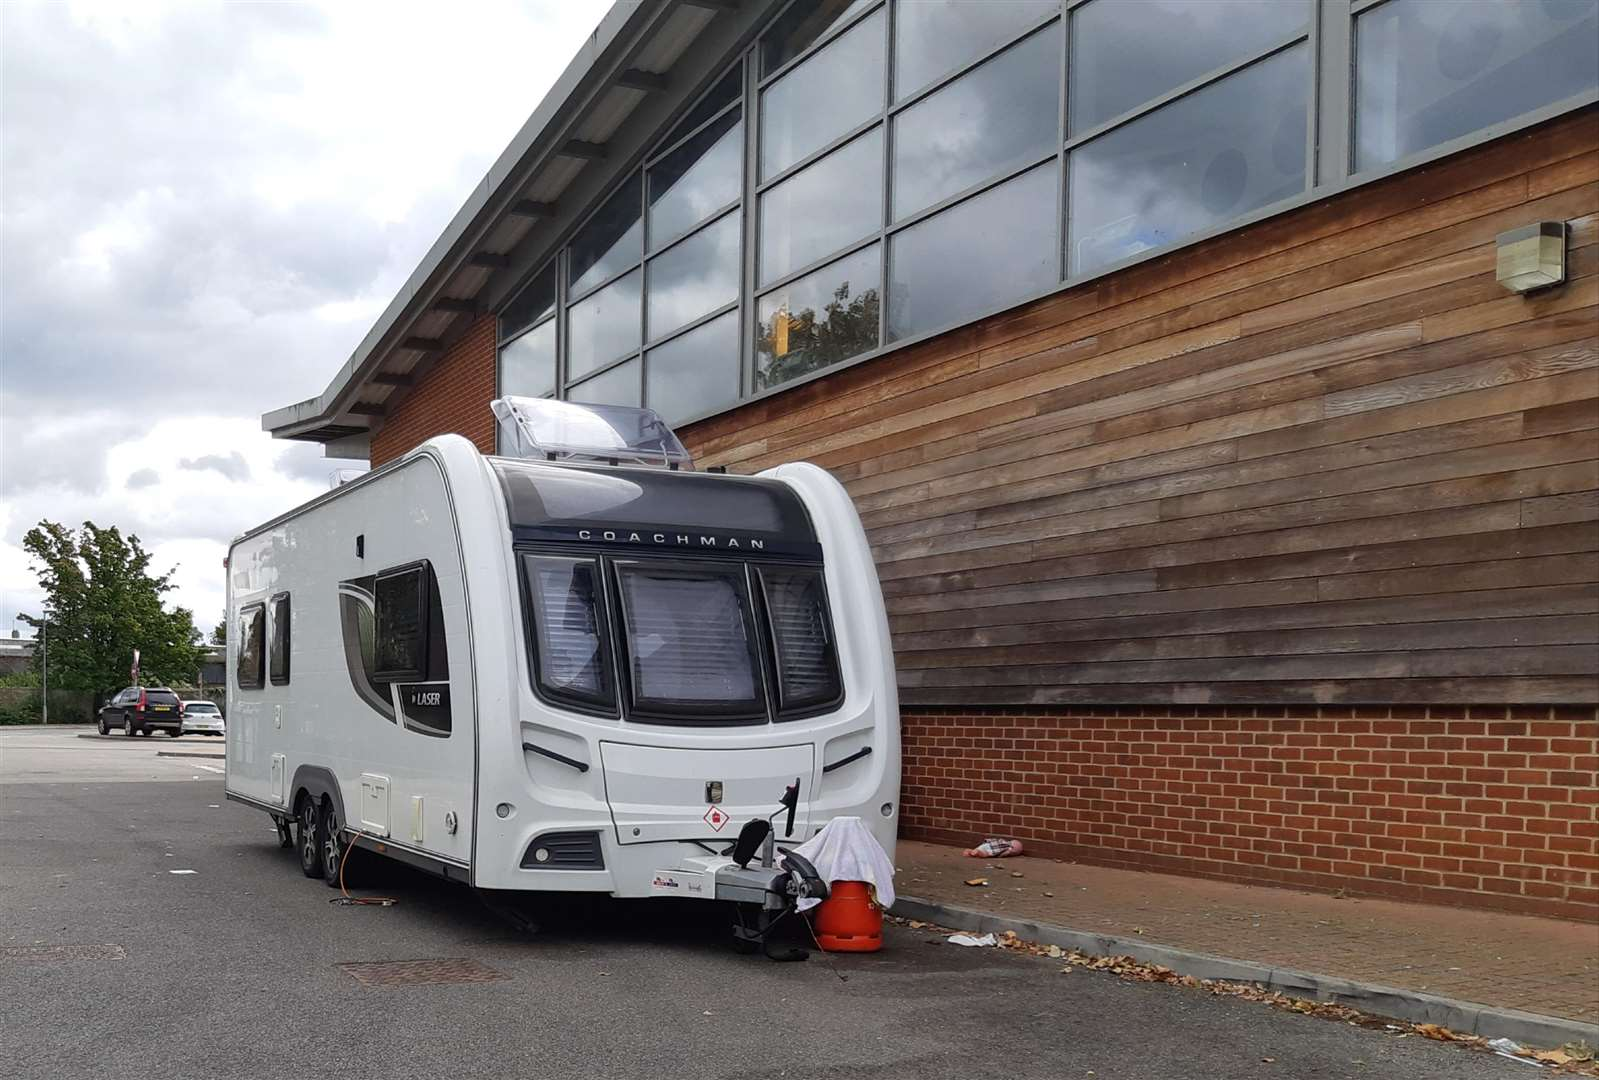 Travellers set up camp at Newmarket Leisure Centre on Wednesday (4185055)